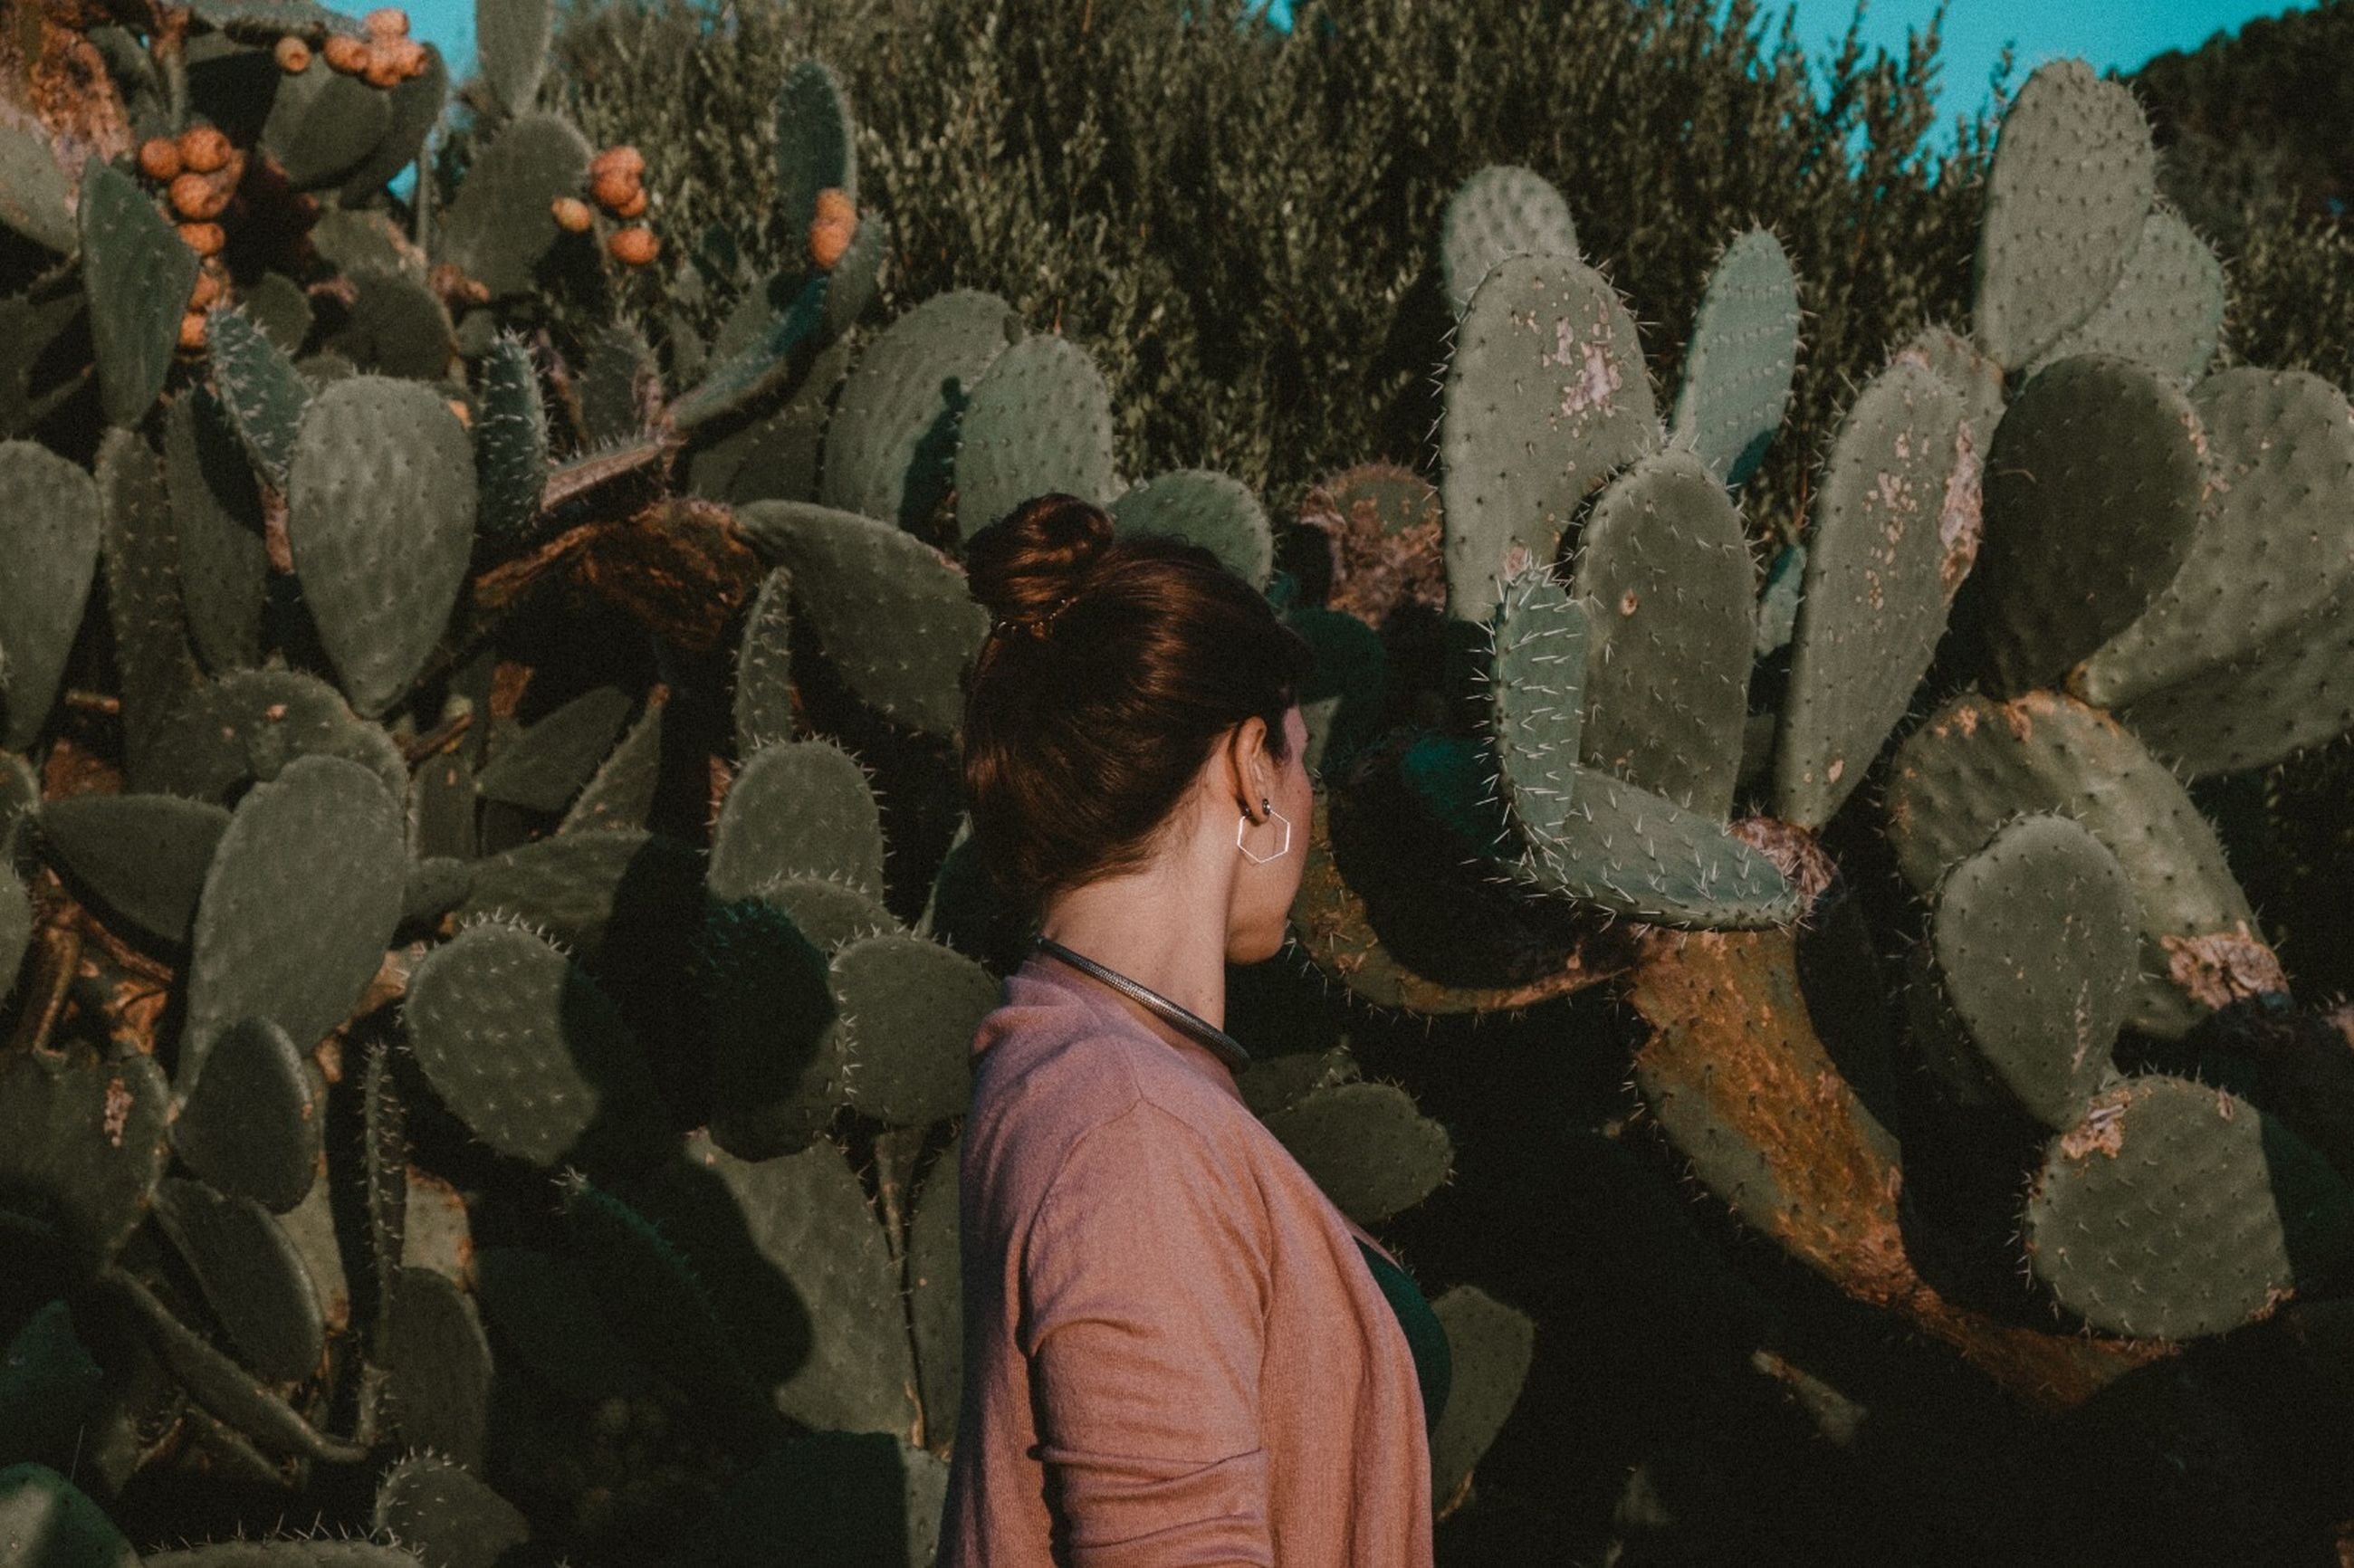 real people, standing, leisure activity, lifestyles, women, people, casual clothing, young adult, waist up, adult, young women, men, portrait, headshot, cactus, succulent plant, nature, plant, warm clothing, hairstyle